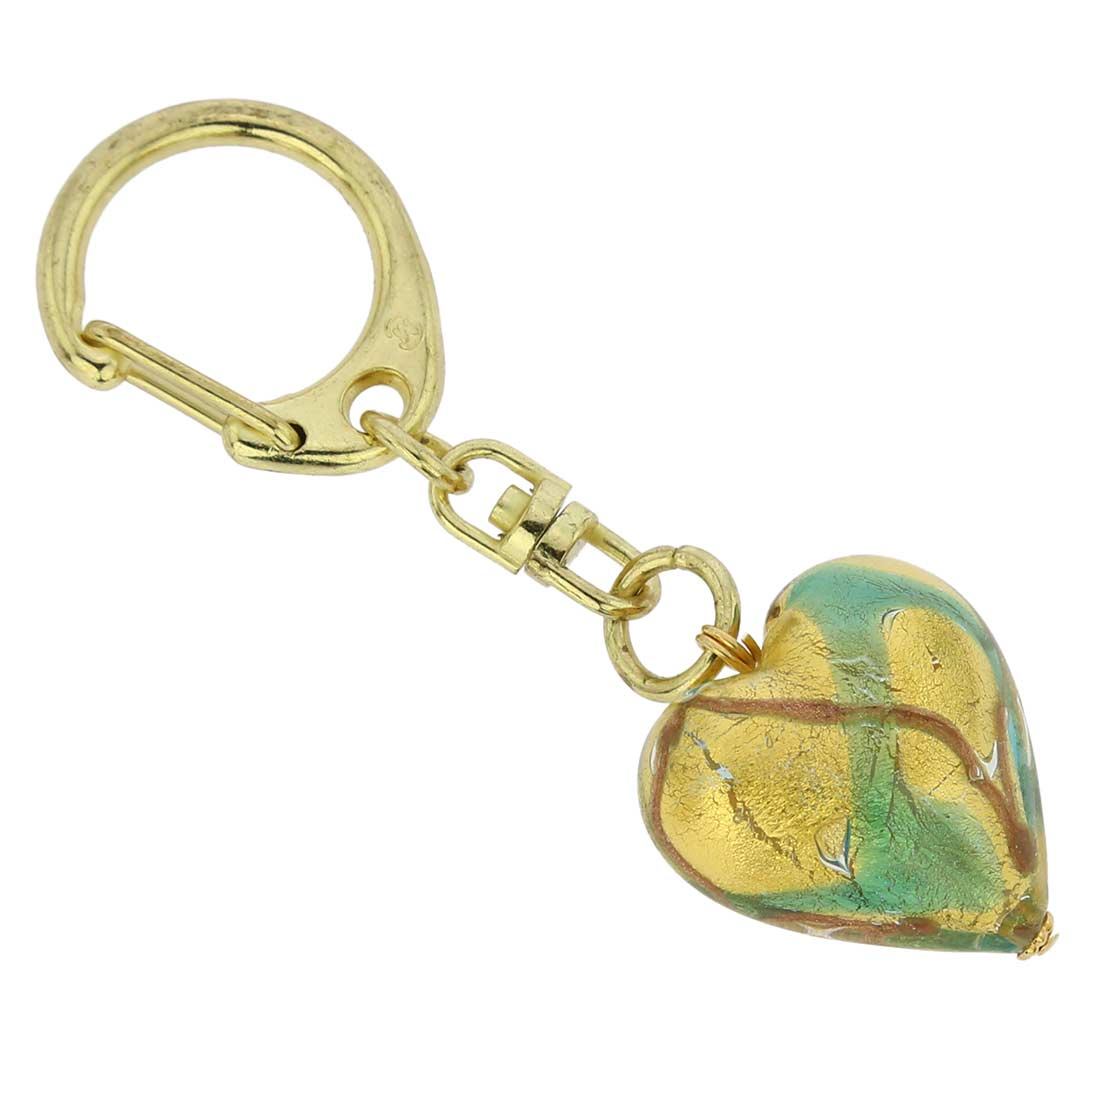 Murano Heart Keychain - Aqua Waves Gold